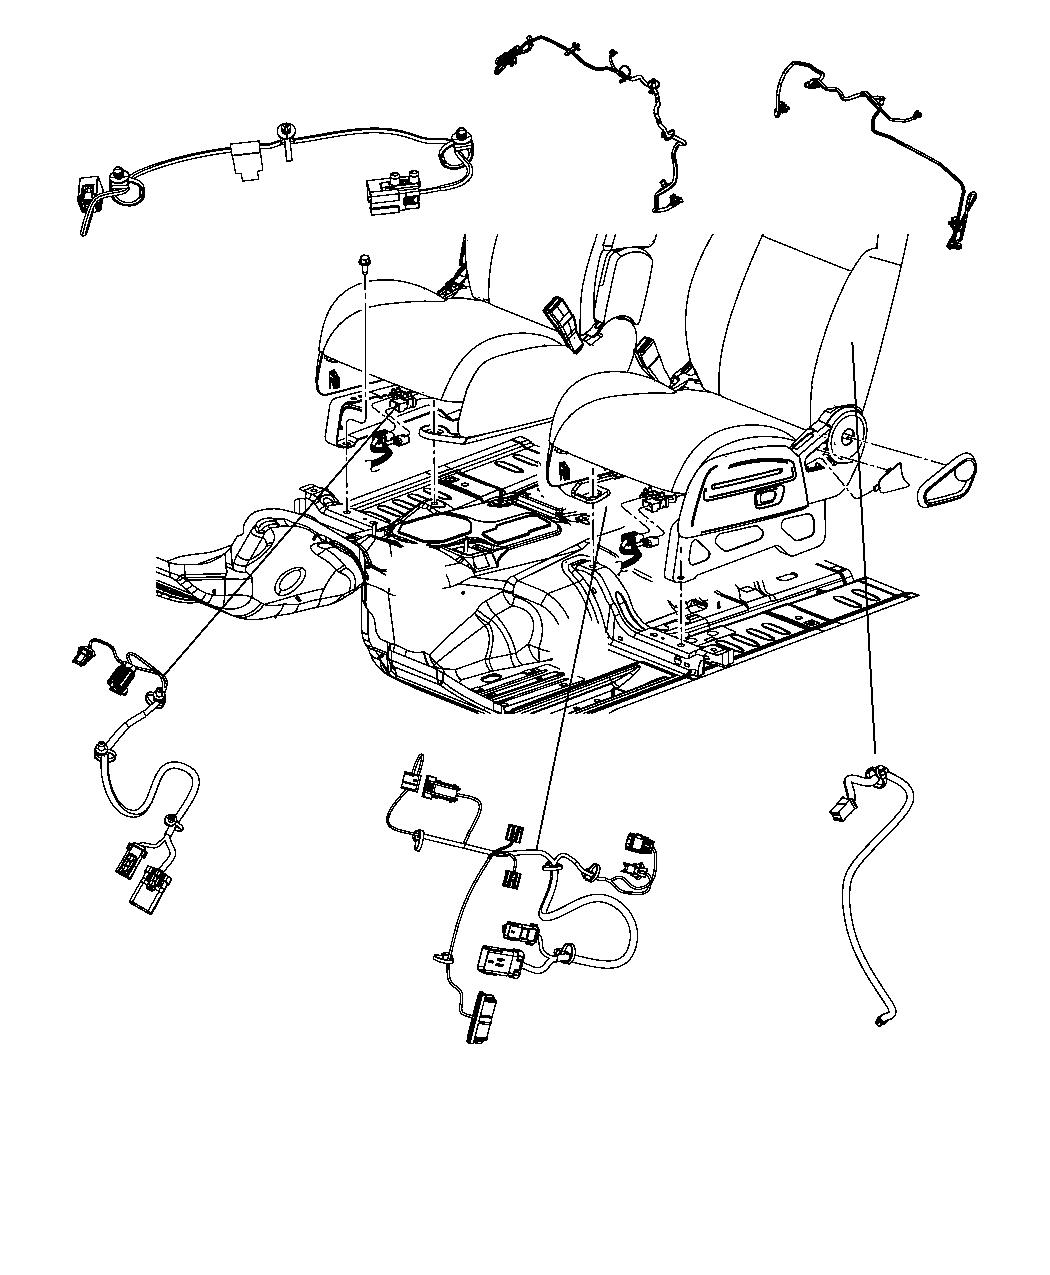 Jeep Compass Wiring. Jumper. Used for: air bag and active